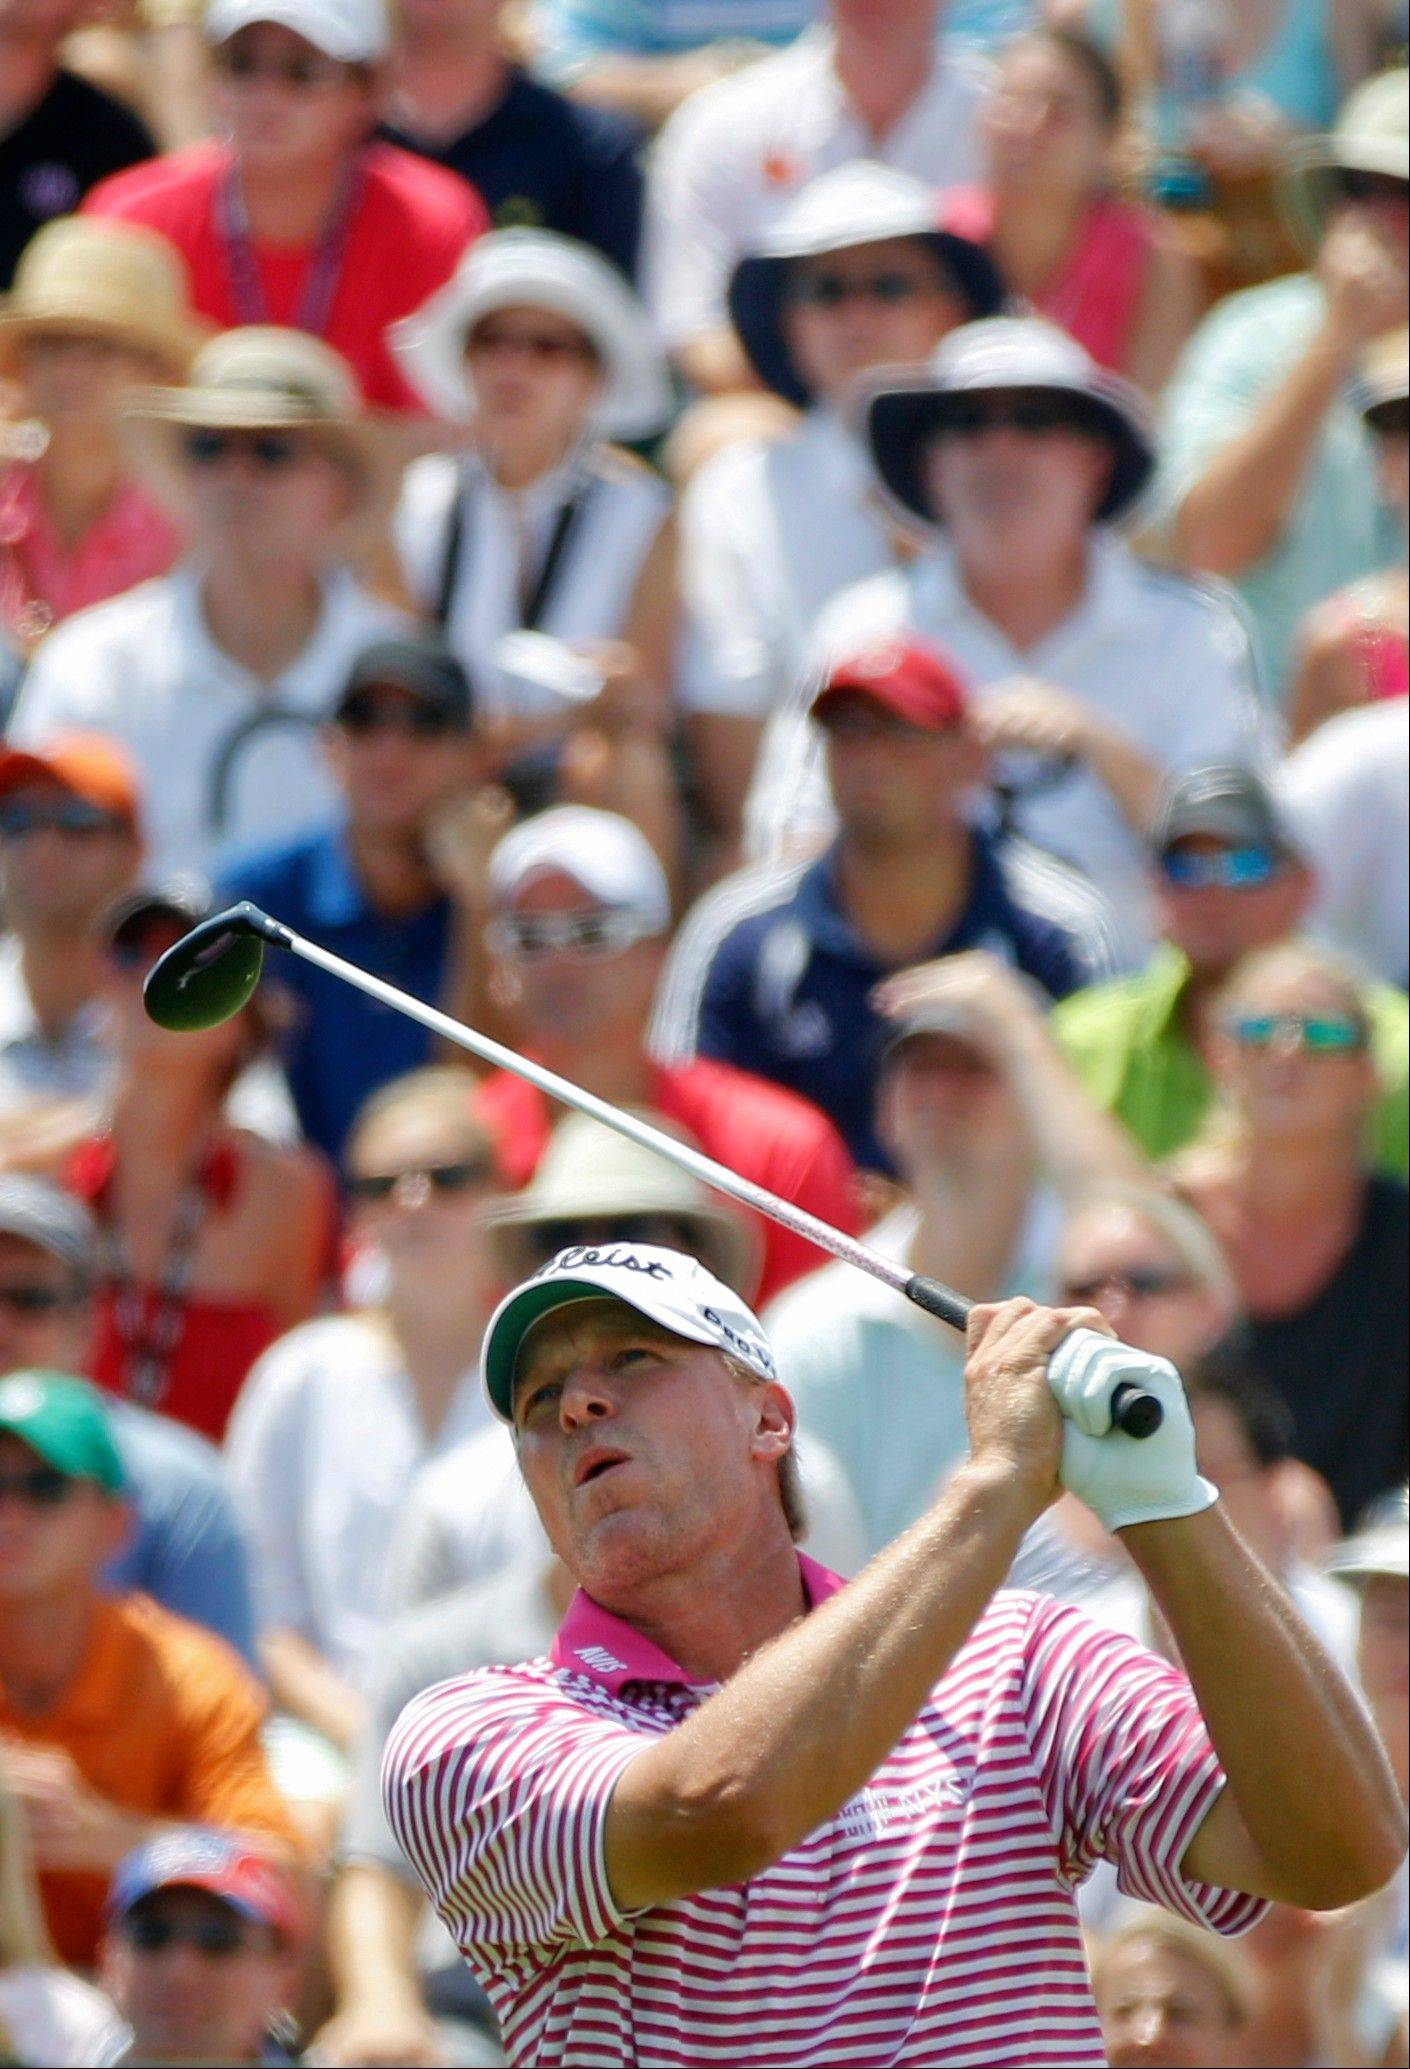 Steve Stricker watches his drive from the first tee during the final round of the PGA Championship golf tournament on the Ocean Course of the Kiawah Island Golf Resort in Kiawah Island, S.C., Sunday, Aug. 12, 2012. (AP Photo/Evan Vucci)